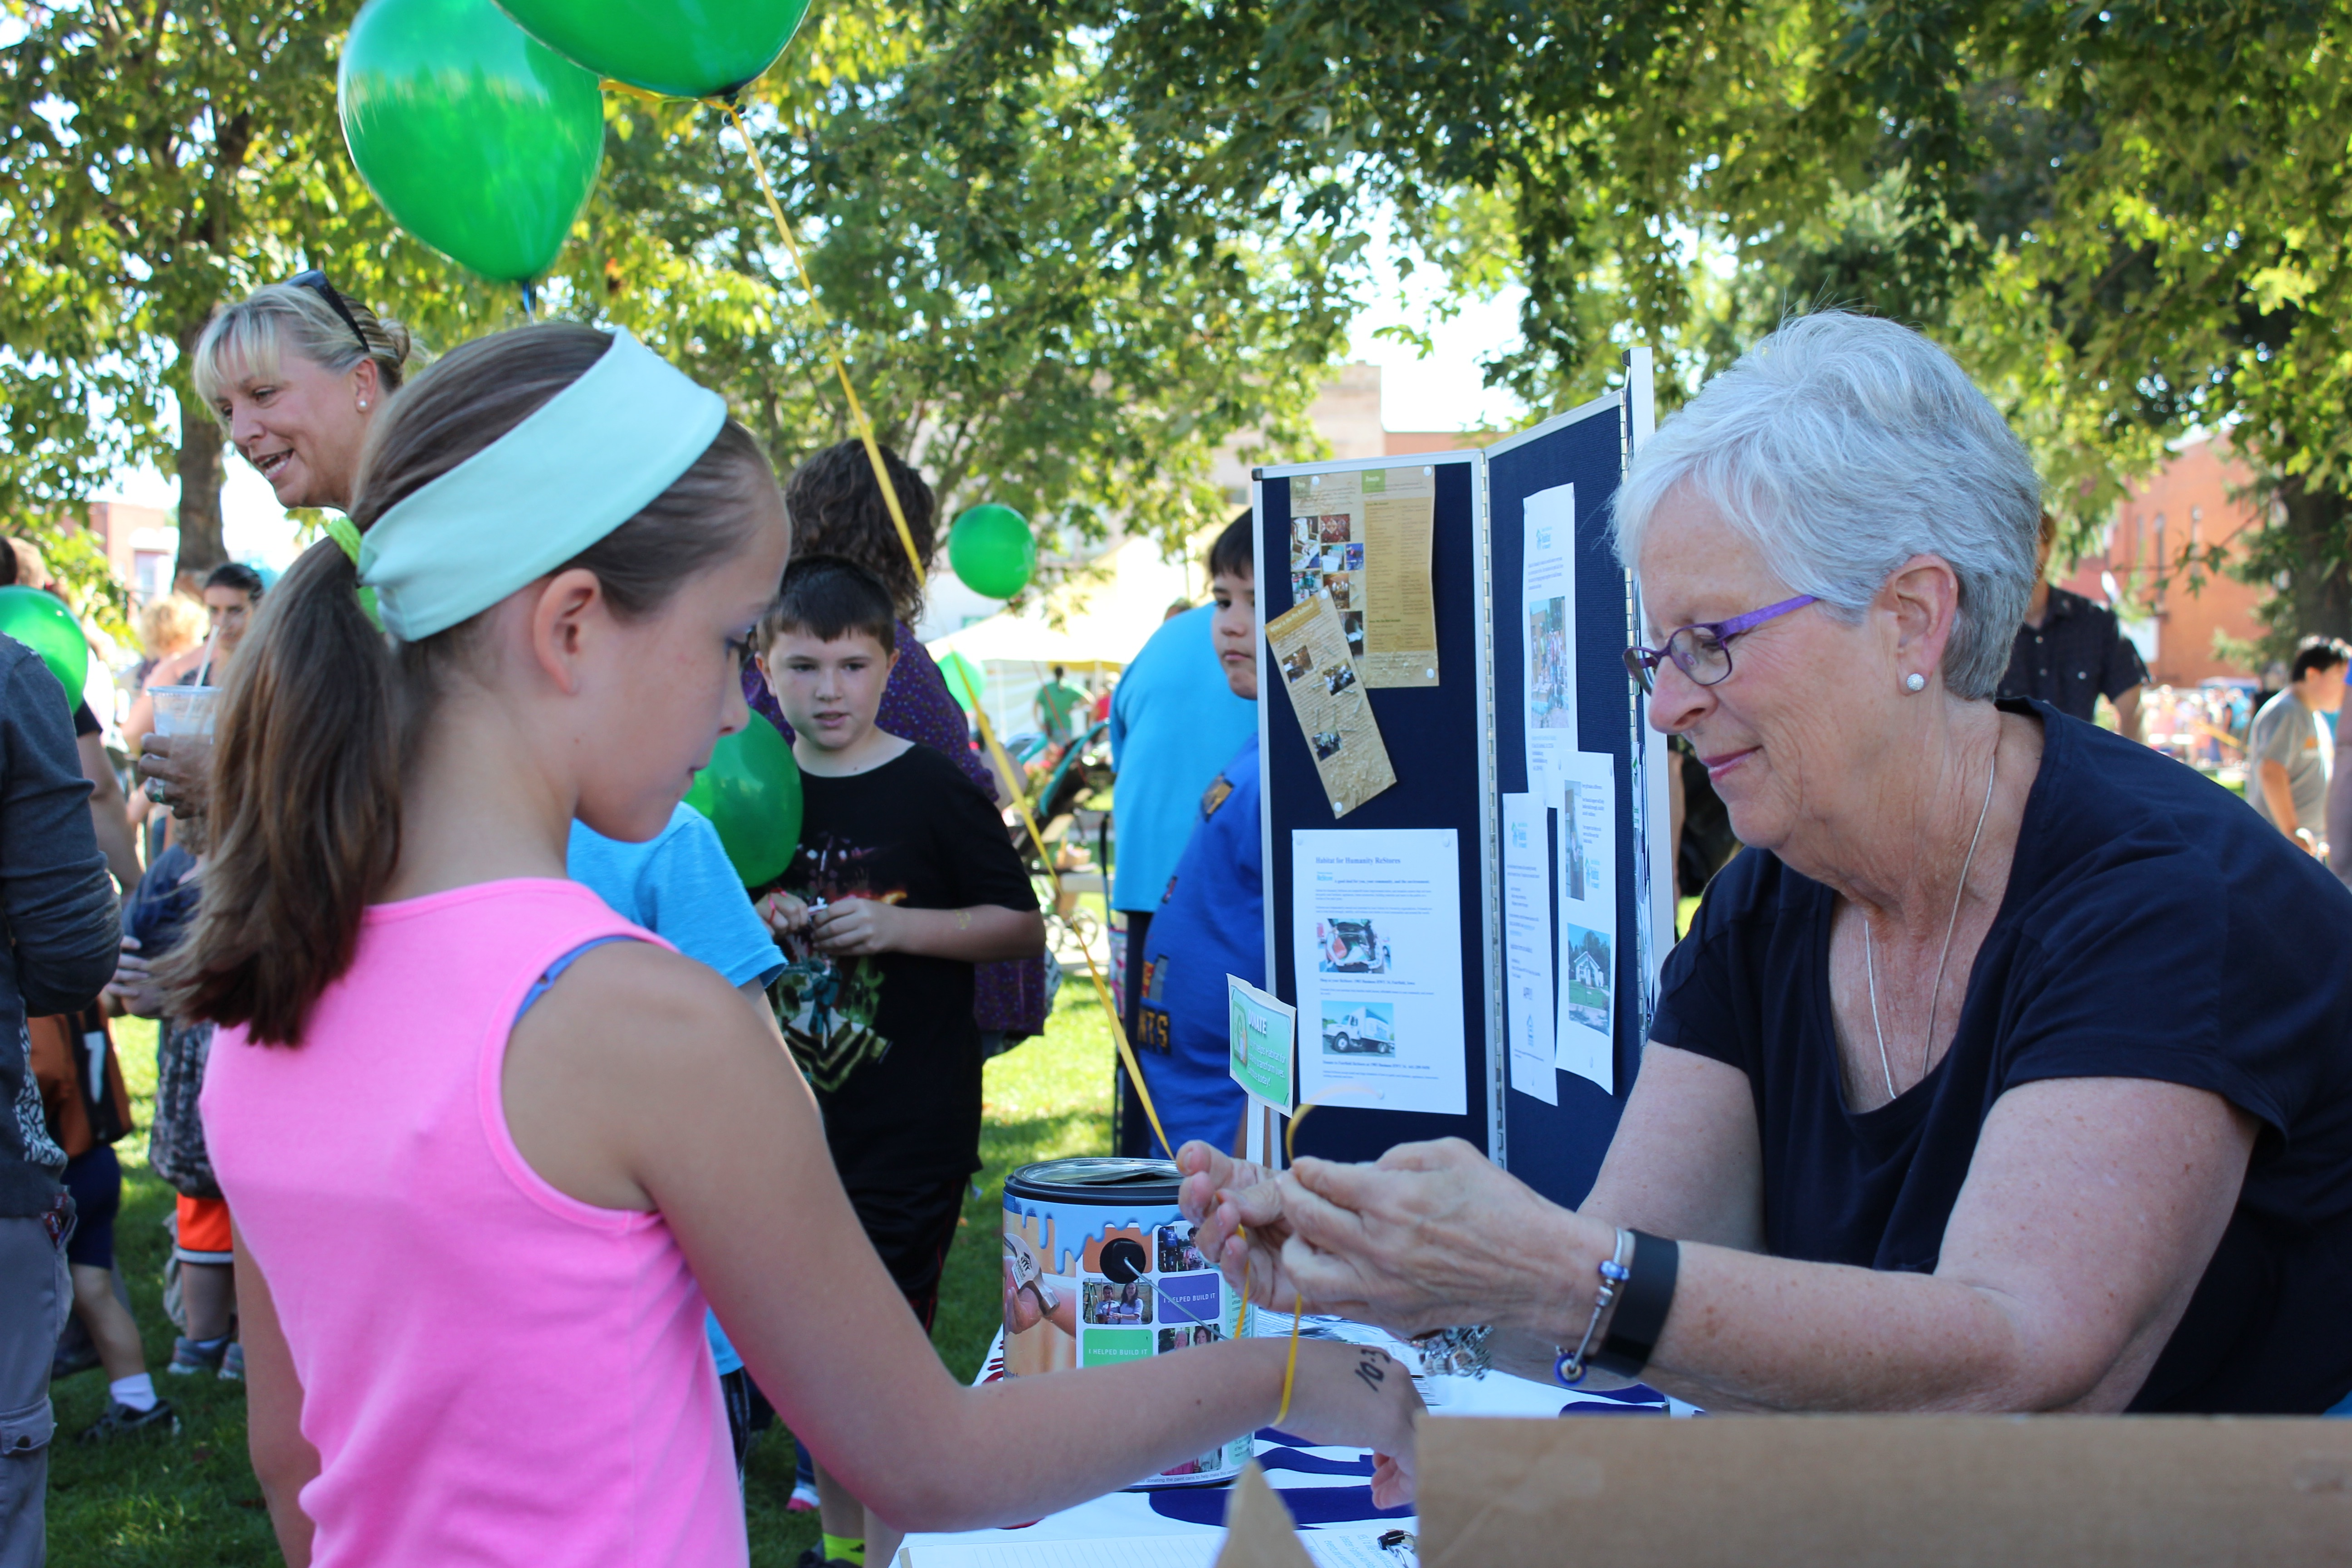 Board member Deb Johnson helps with balloons at the Kiwanis Kids' Day on the square.